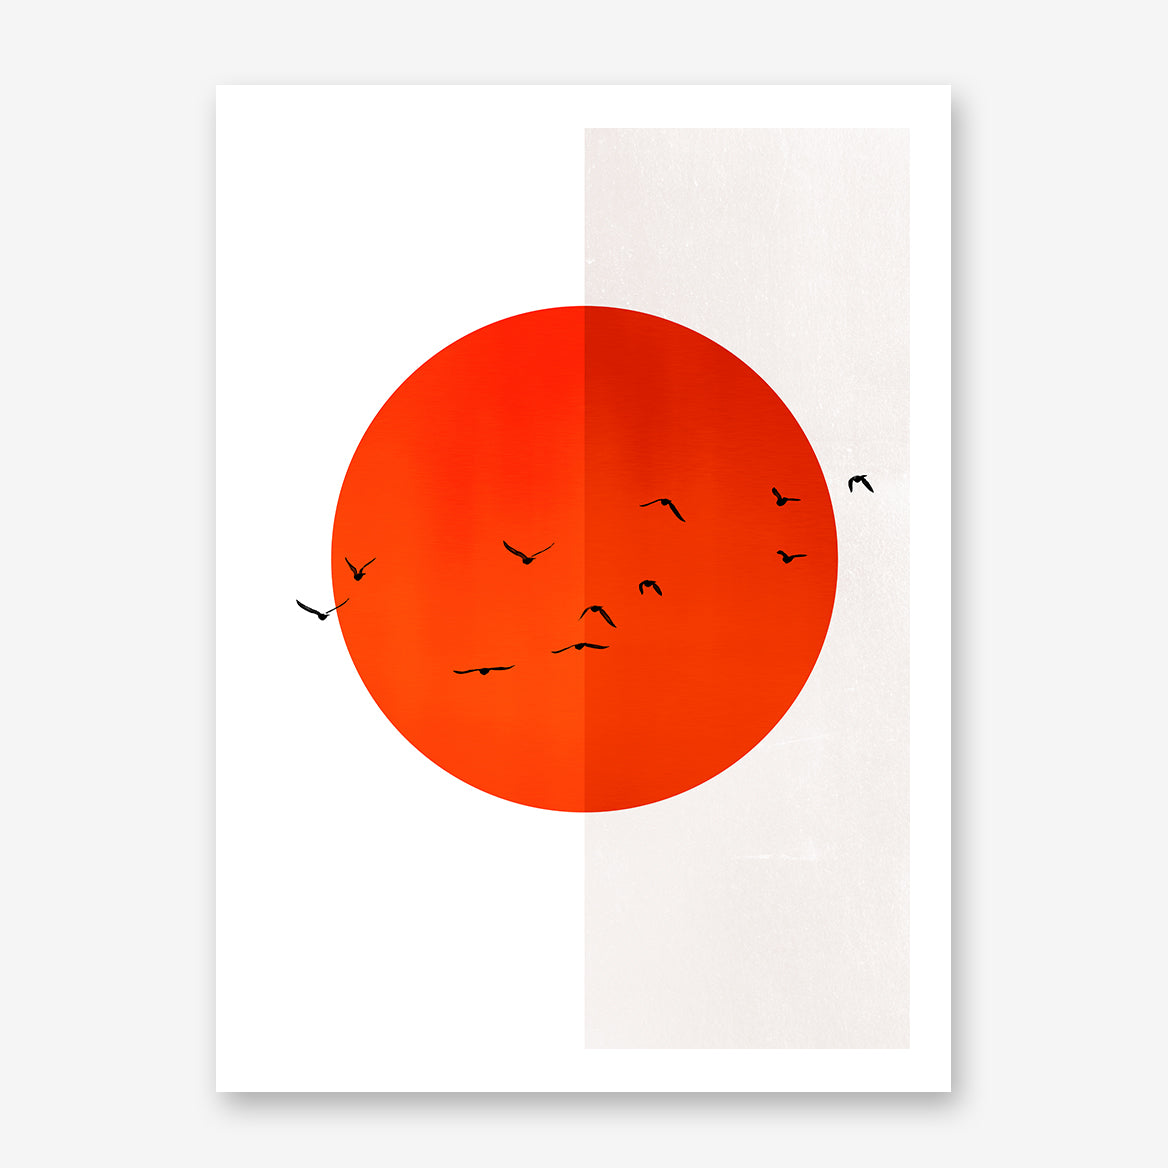 Poster print by Kubistika, with red sun and black birds, on half white, half grey background.